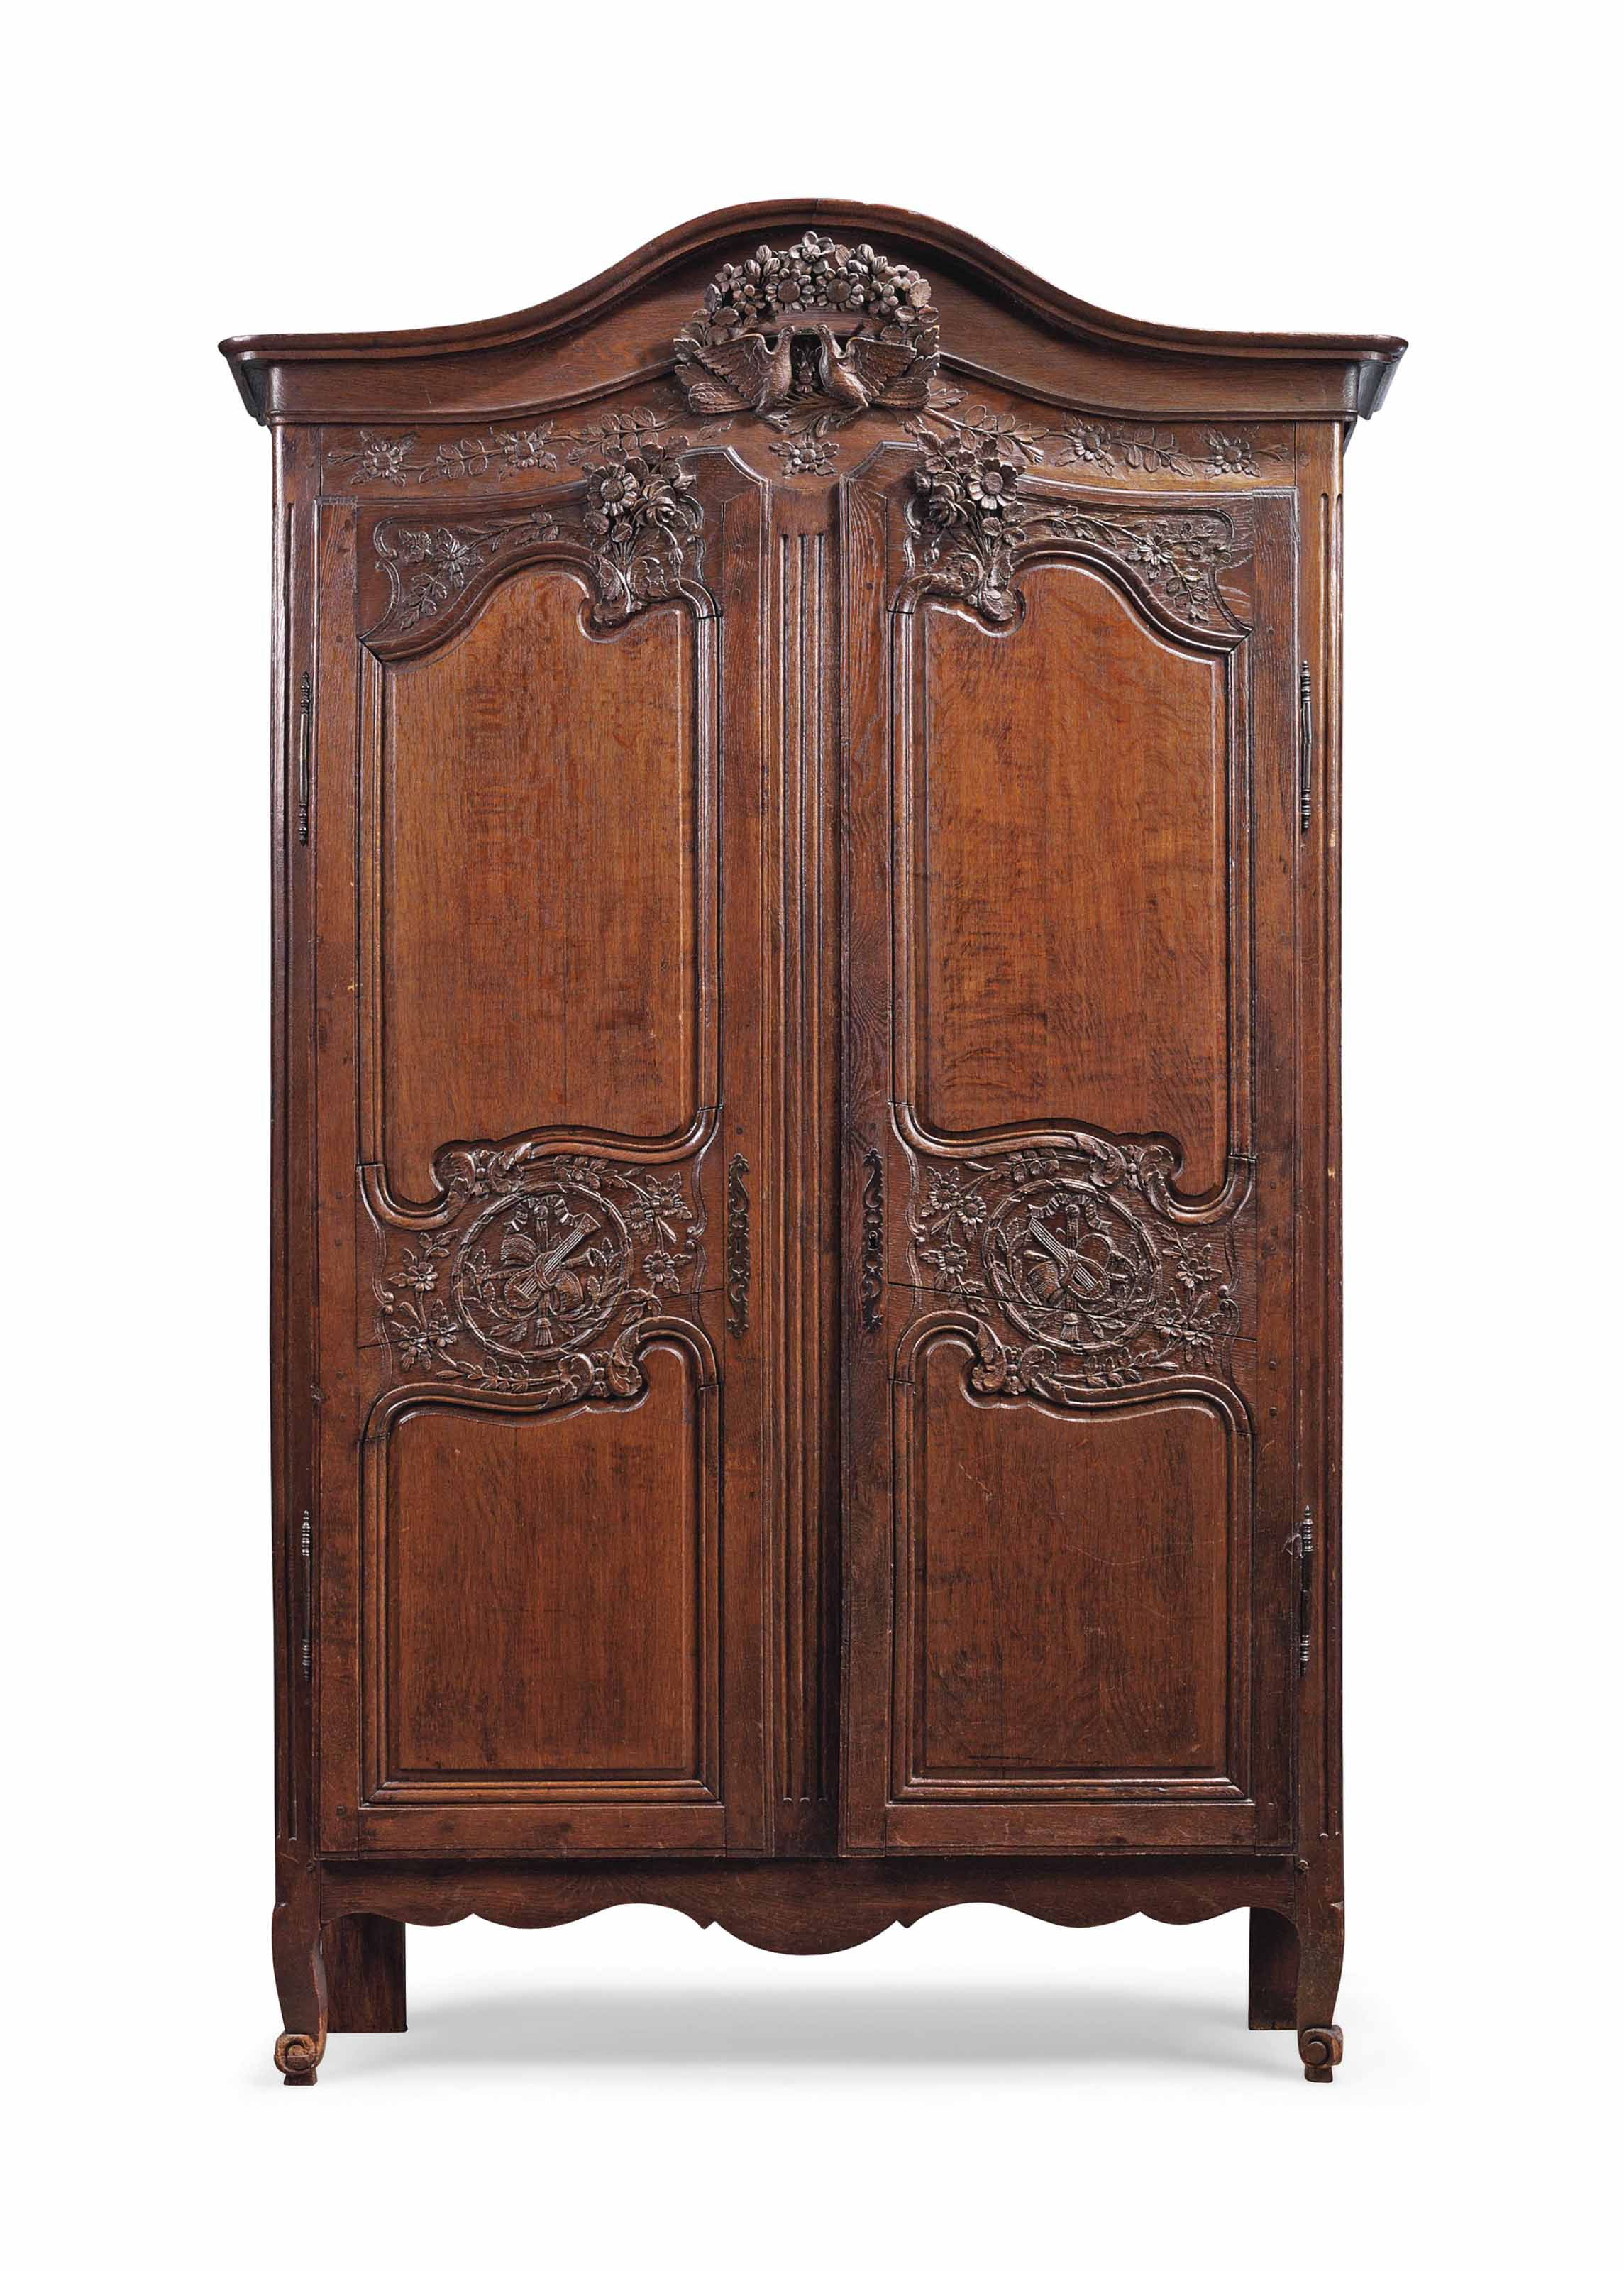 a louis xvi oak armoire de mariage normandy late 18th century reduced in depth christie 39 s. Black Bedroom Furniture Sets. Home Design Ideas